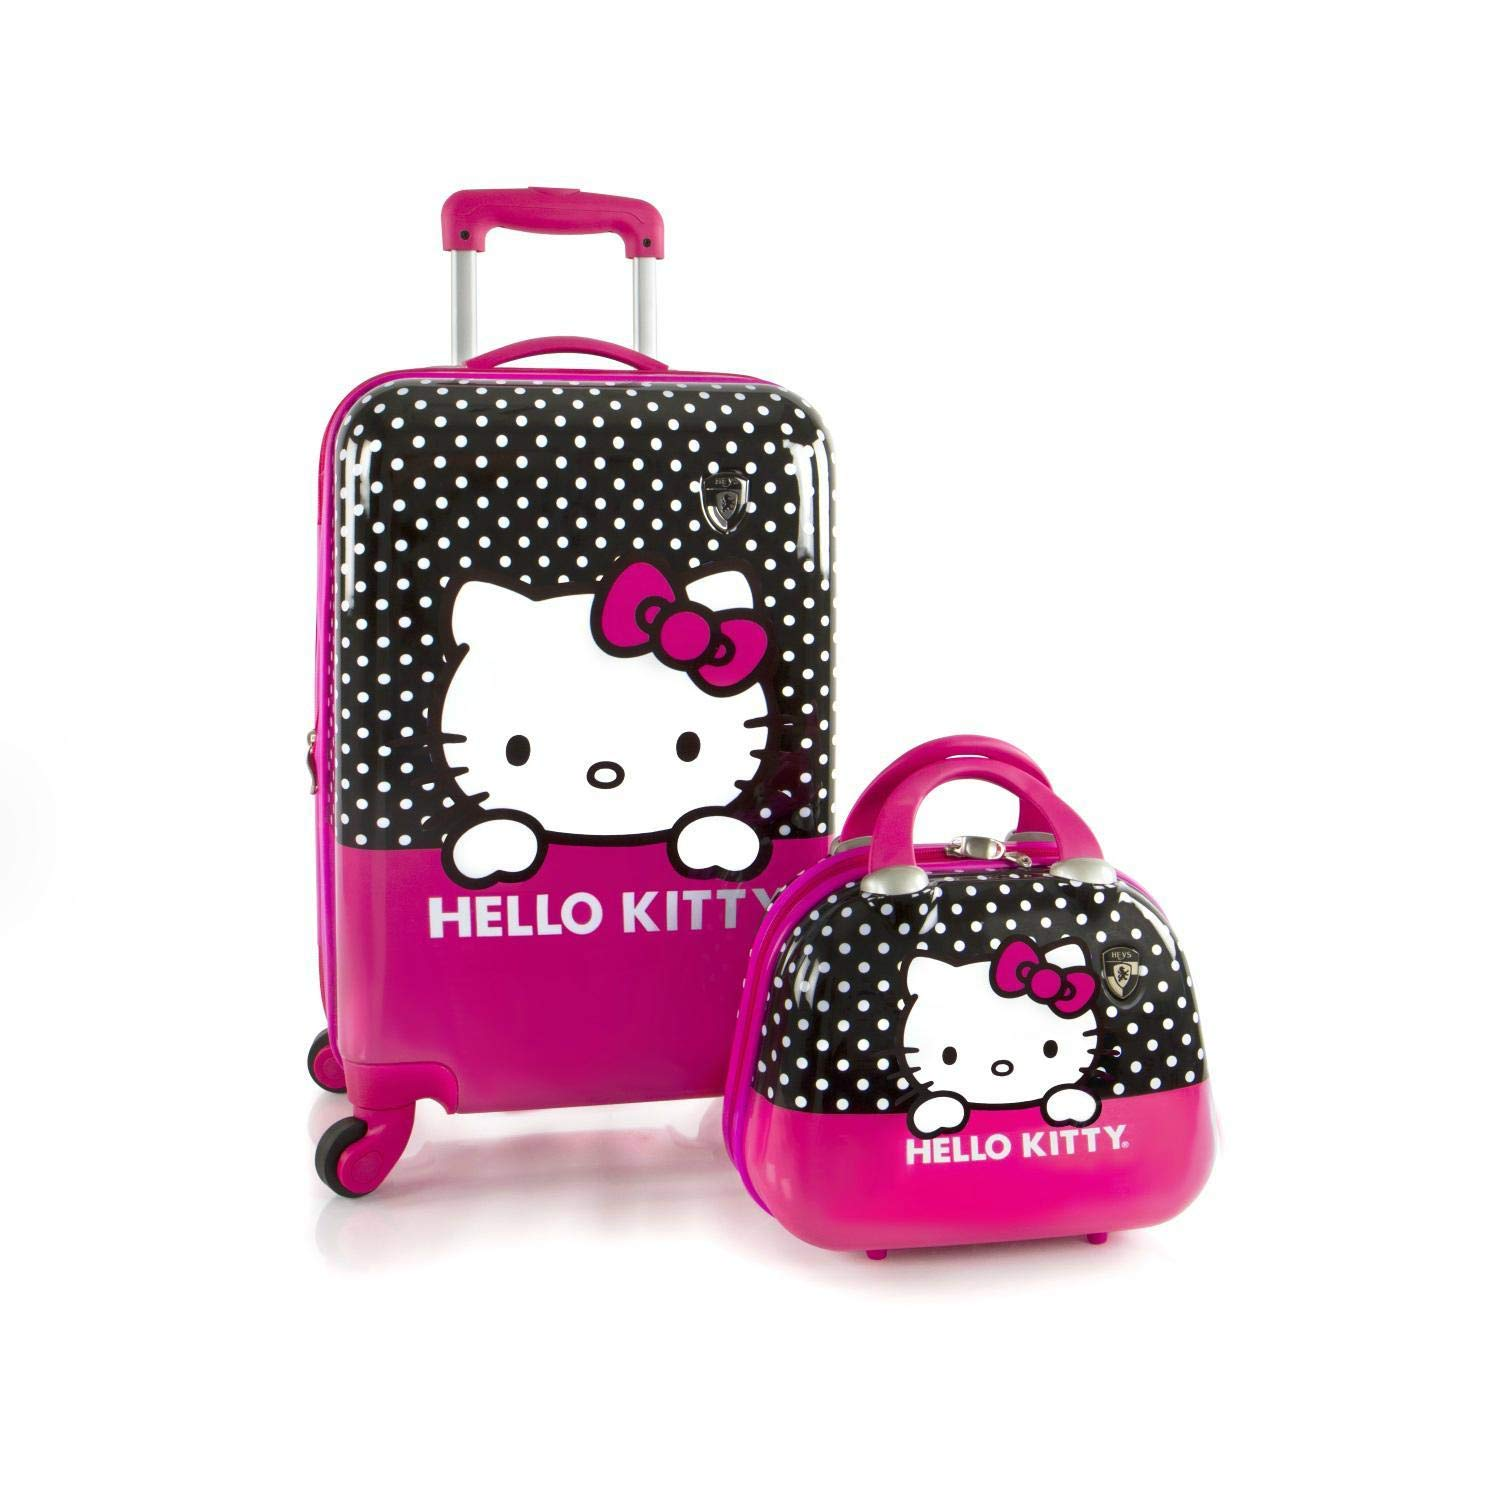 Heys America Unisex Hello Kitty 21